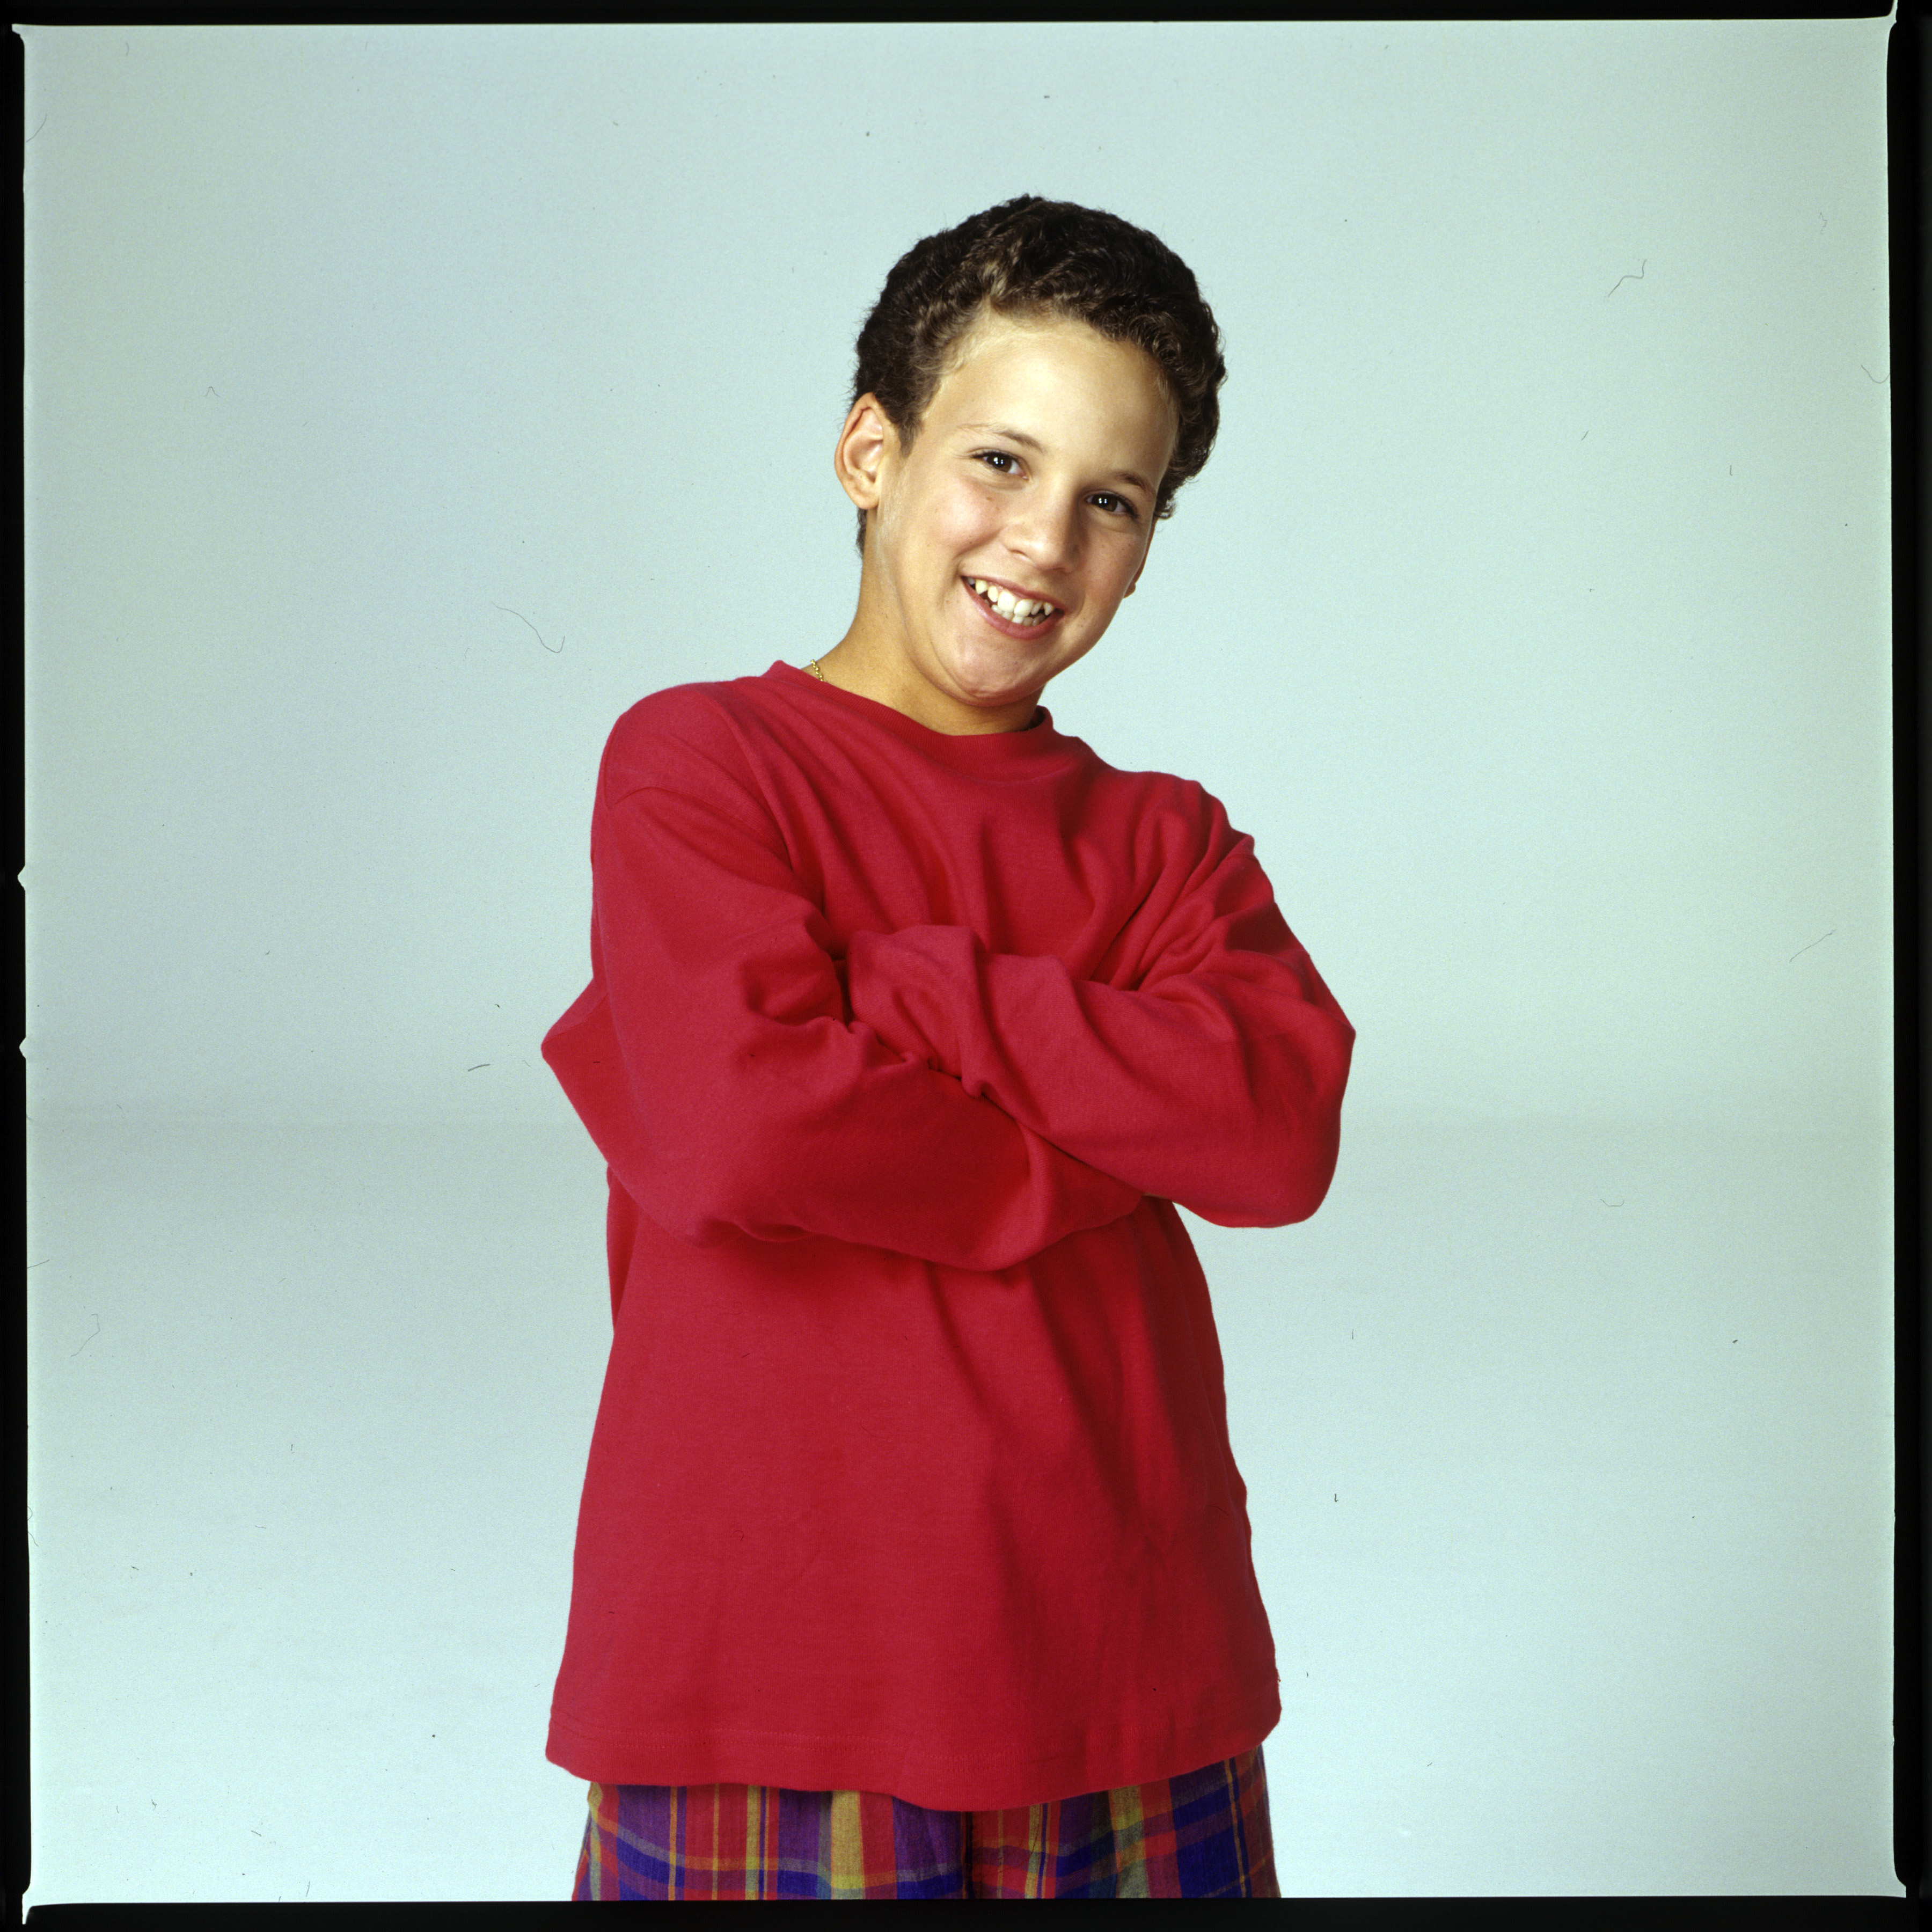 Ben Savage at an event for Boy Meets World (1993)